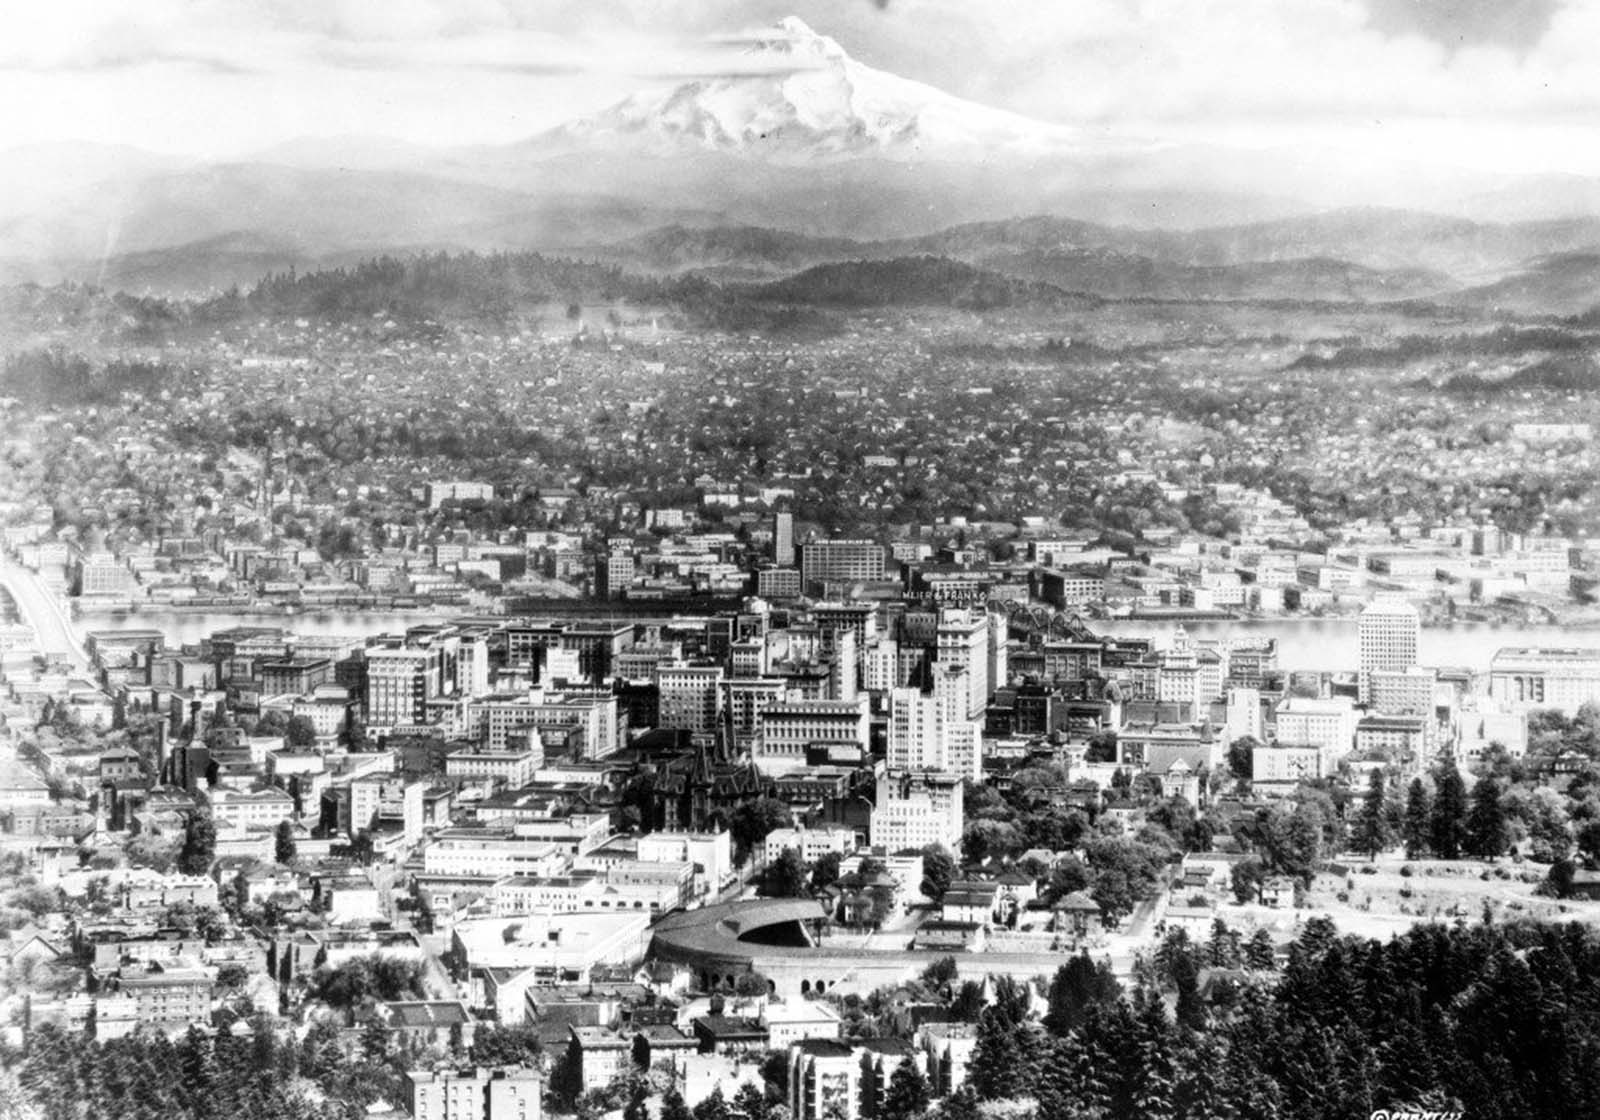 How did Oregon, a state founded exclusively for whites and a hotbed for the Ku Klux Klan, become one of the most liberal states in the US?